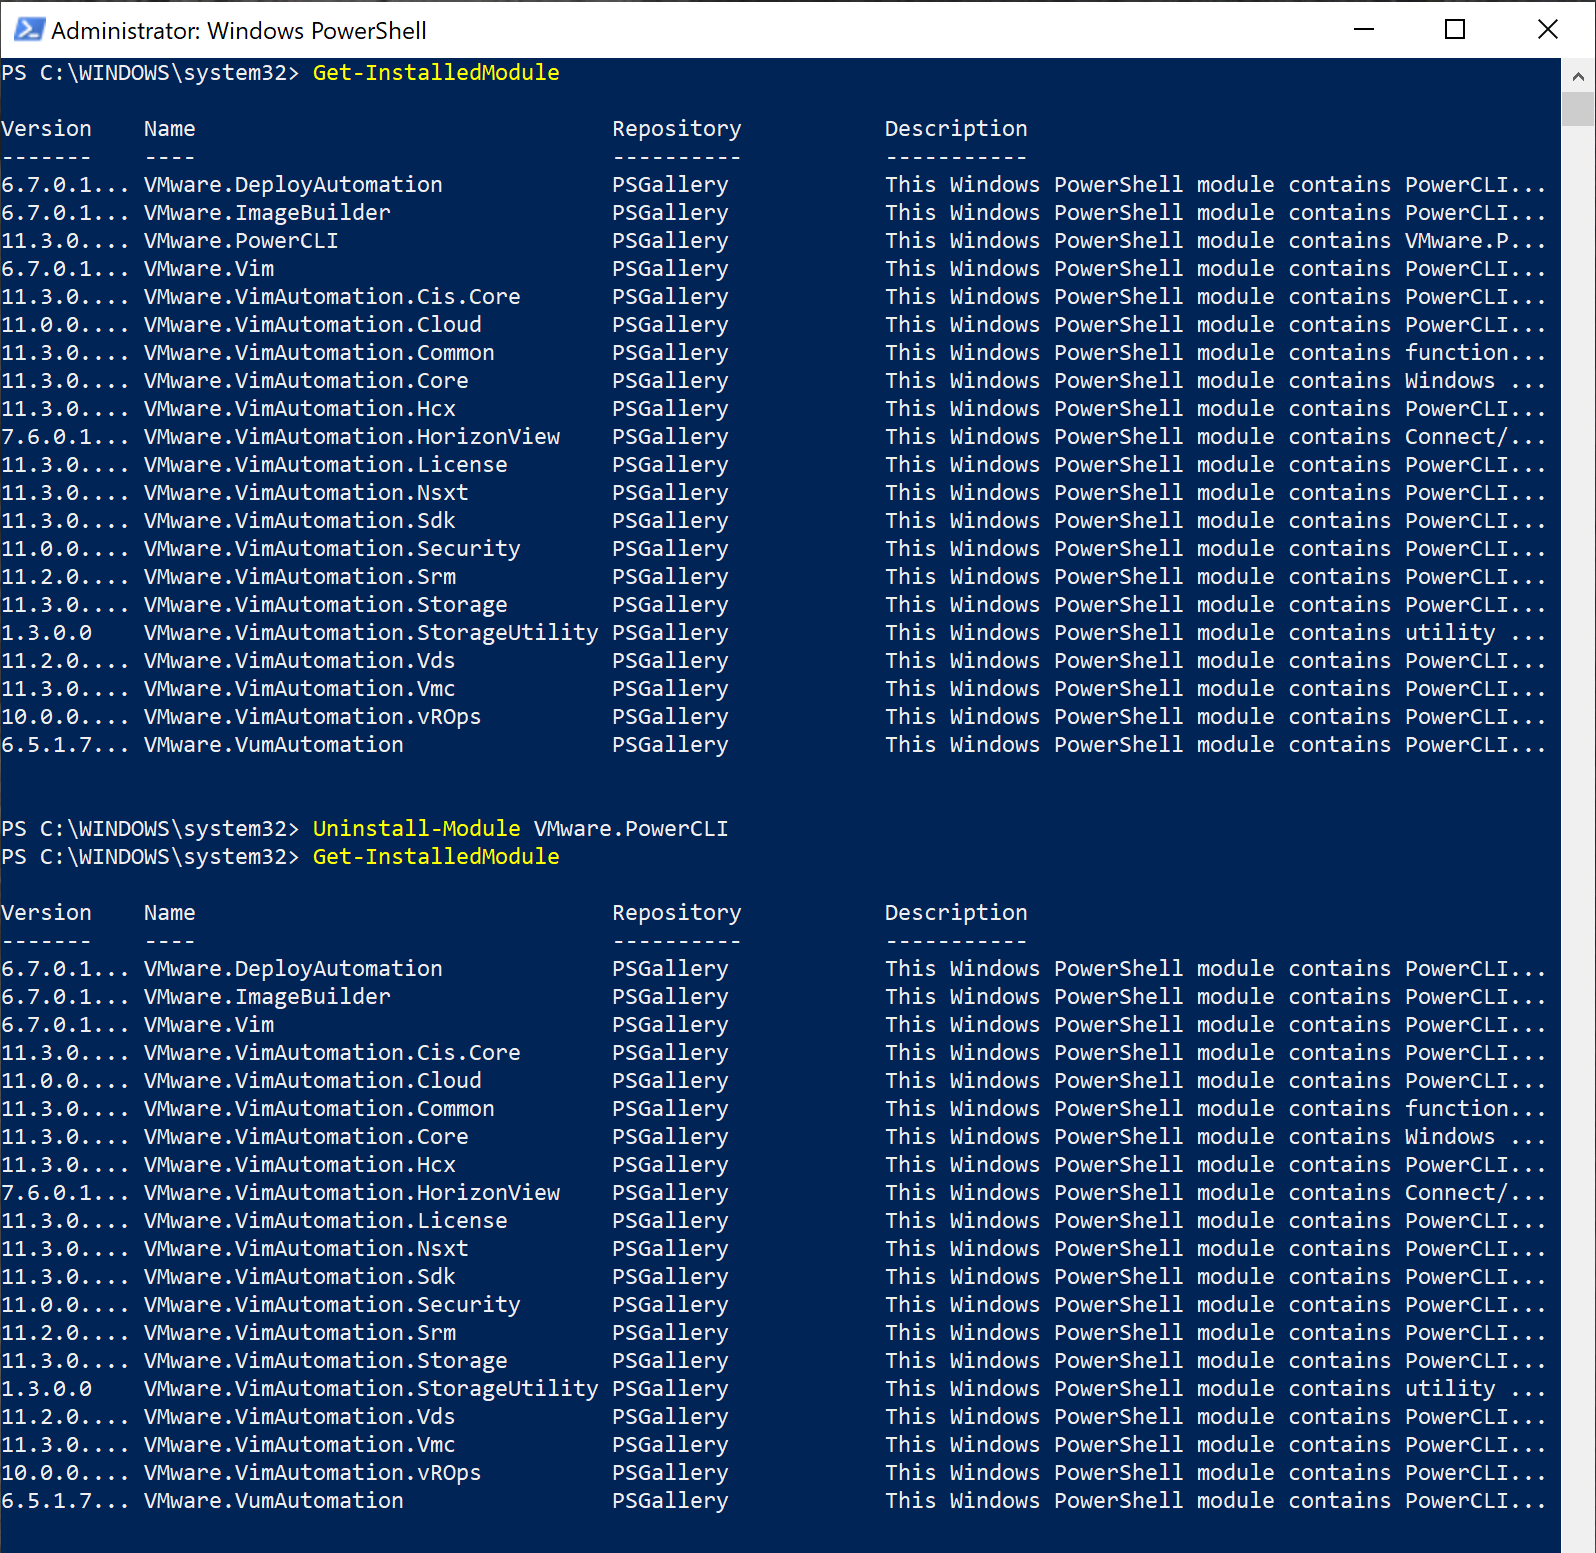 Uninstalling a module downloaded from the PowerShell Gallery